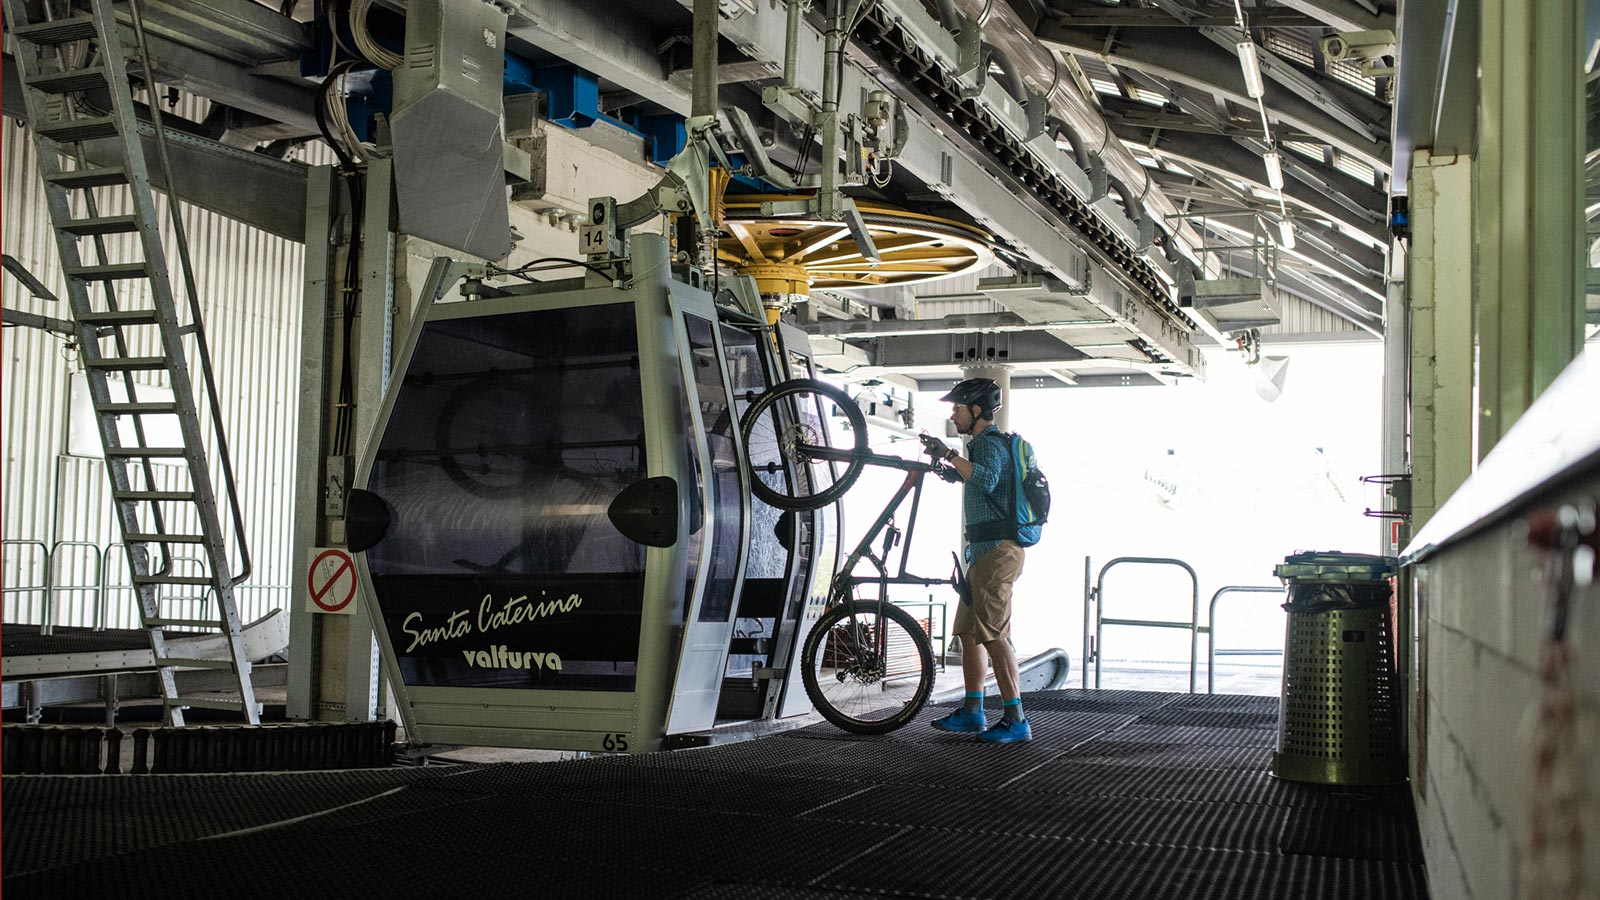 A biker climbs the cable car by bike at Santa Caterina Valfurva